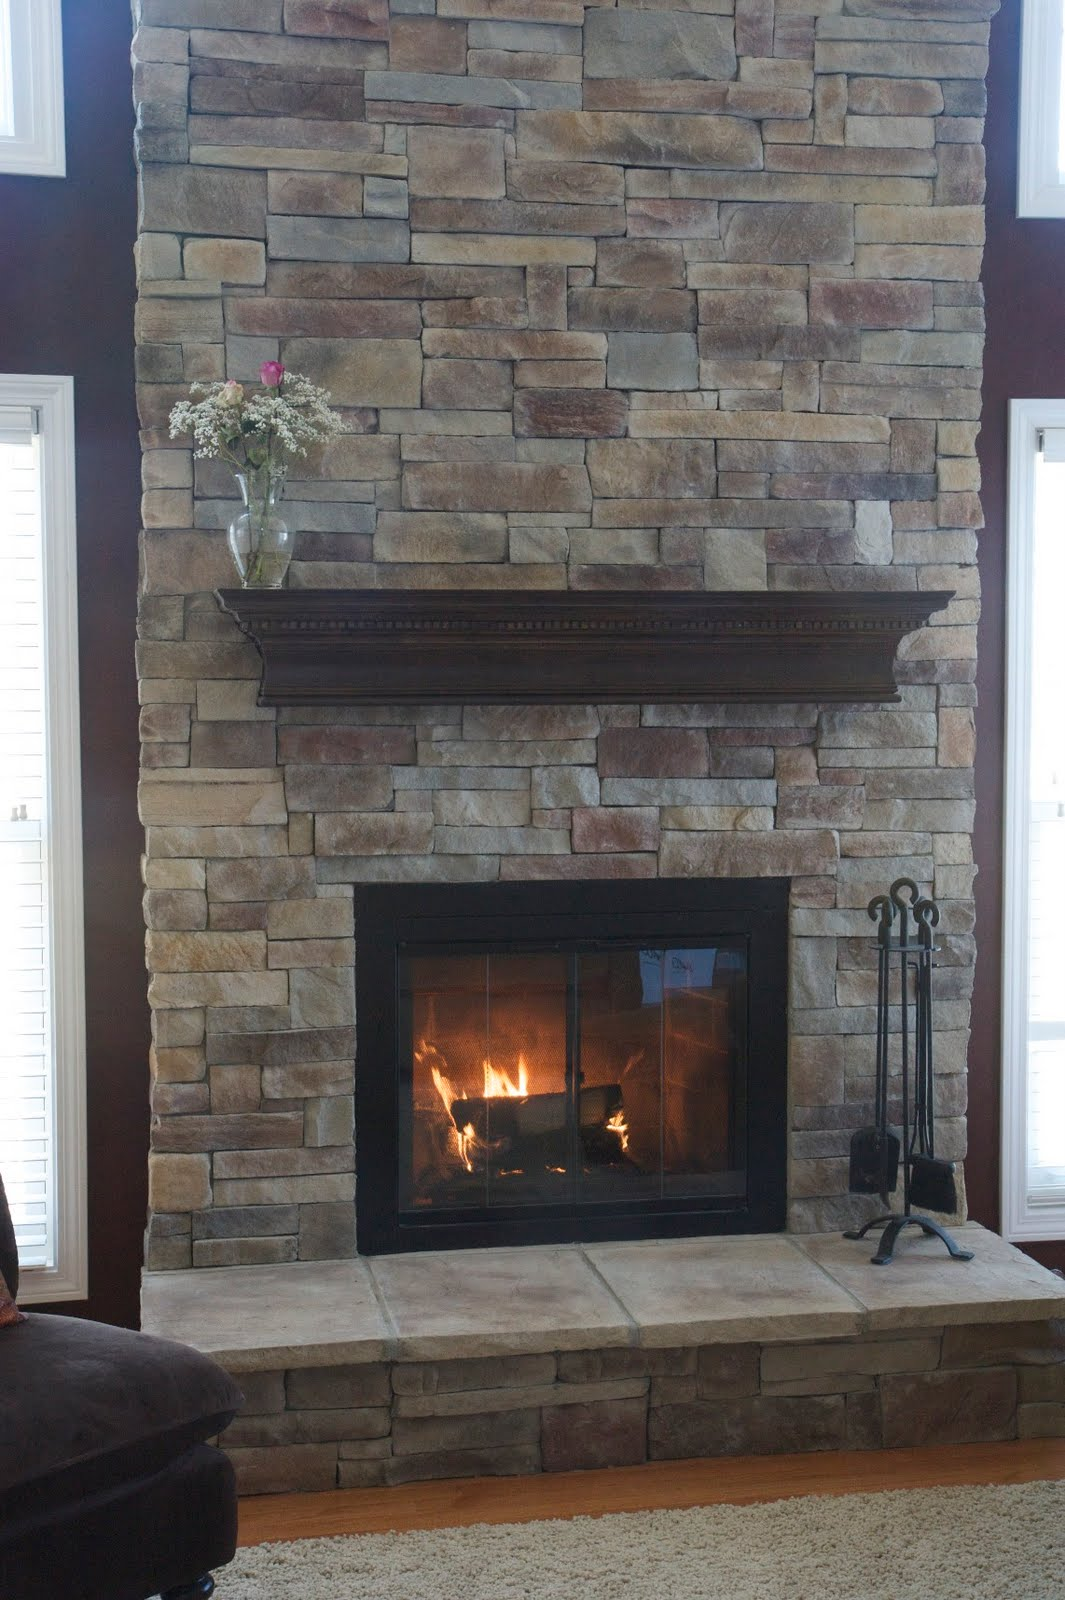 Stone Brick Fireplace with Mantel 1065 x 1600